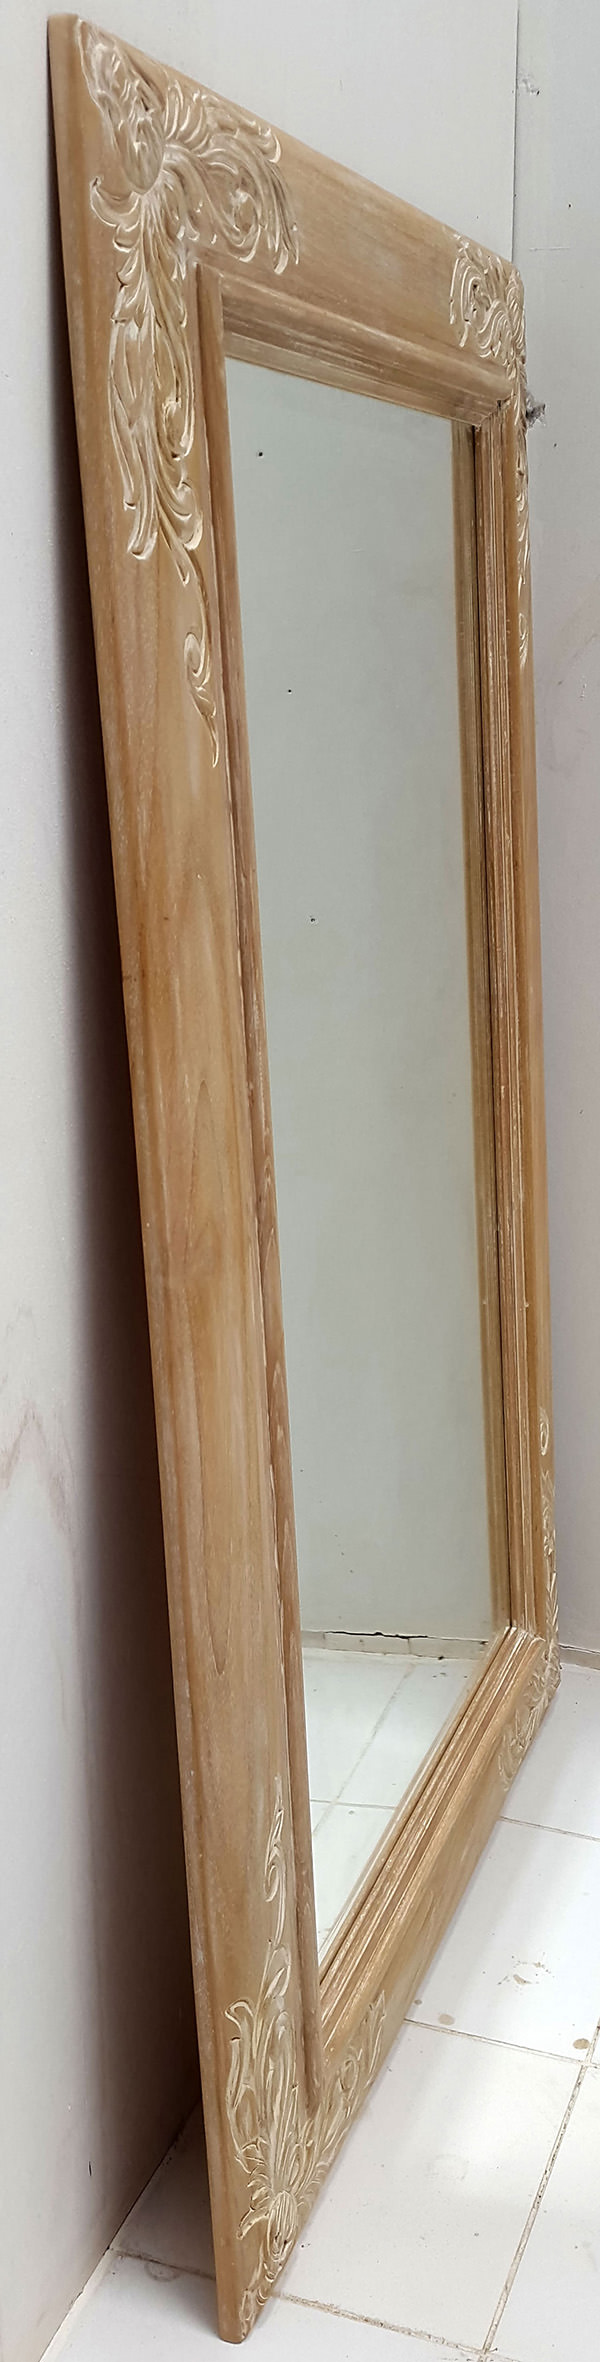 teak wood carved mirror frame